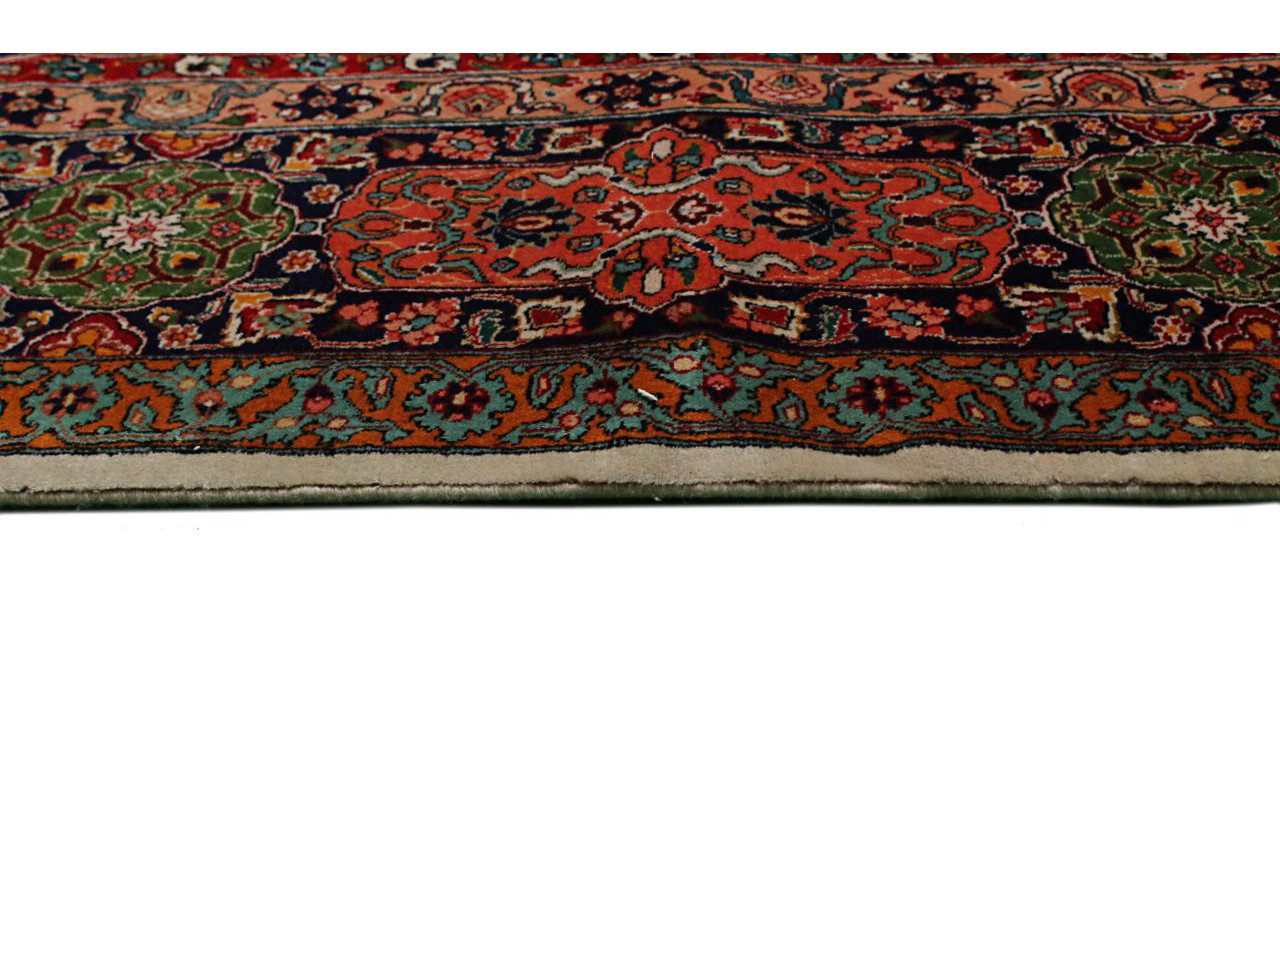 tabriz tapis prestigieux n 25287 480x307cm. Black Bedroom Furniture Sets. Home Design Ideas